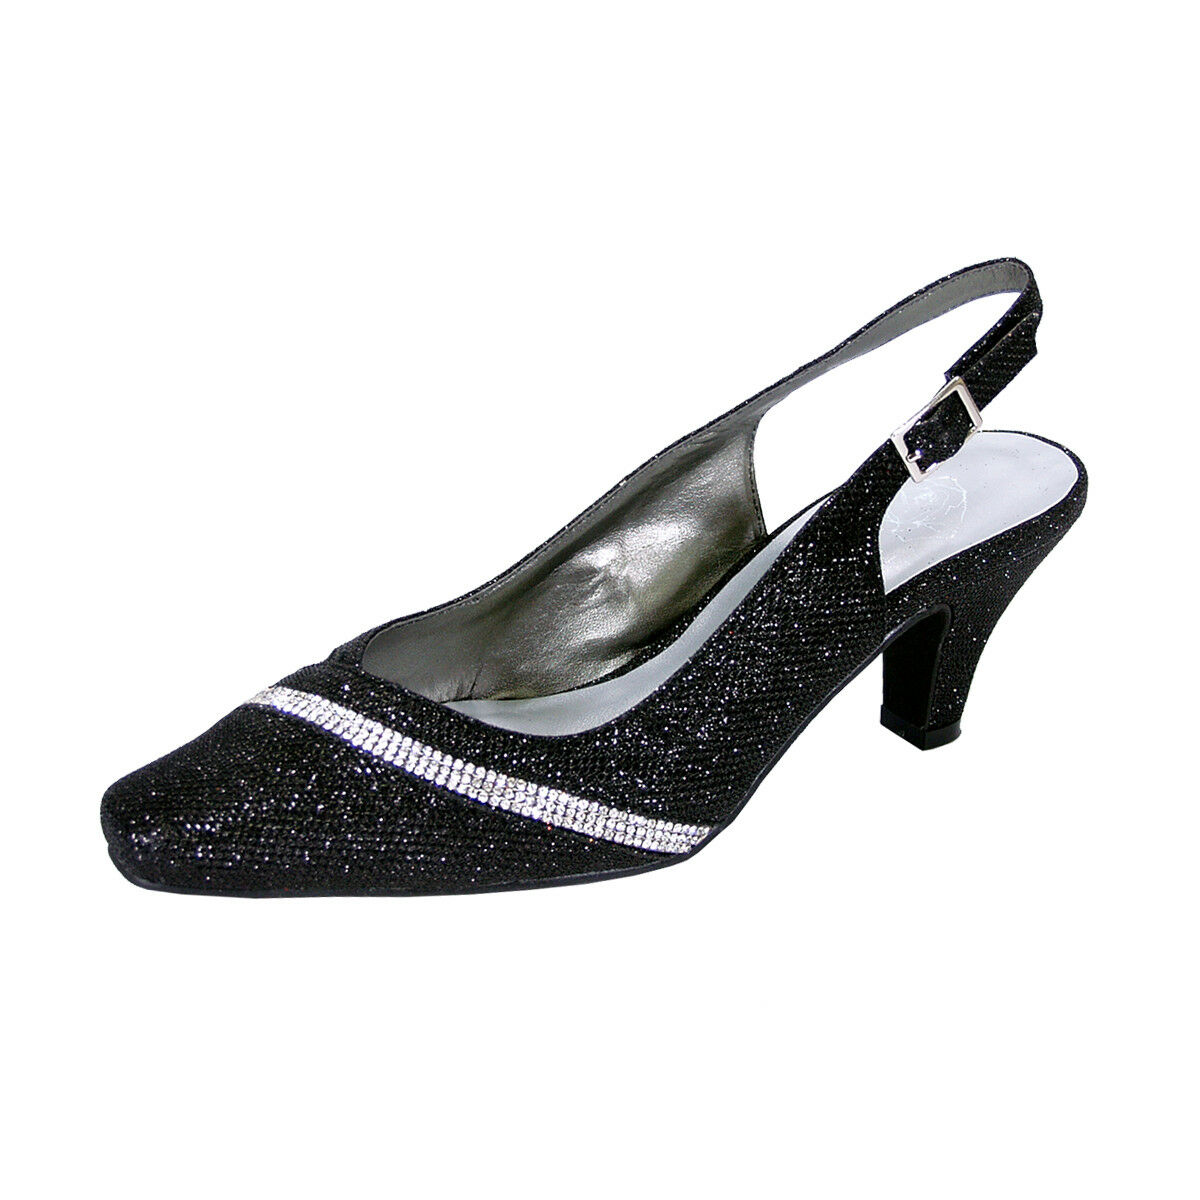 FLORAL FLORAL FLORAL Candice Damens Wide Width Decorative Crystal Strip on Vamp Slingback ed5c33